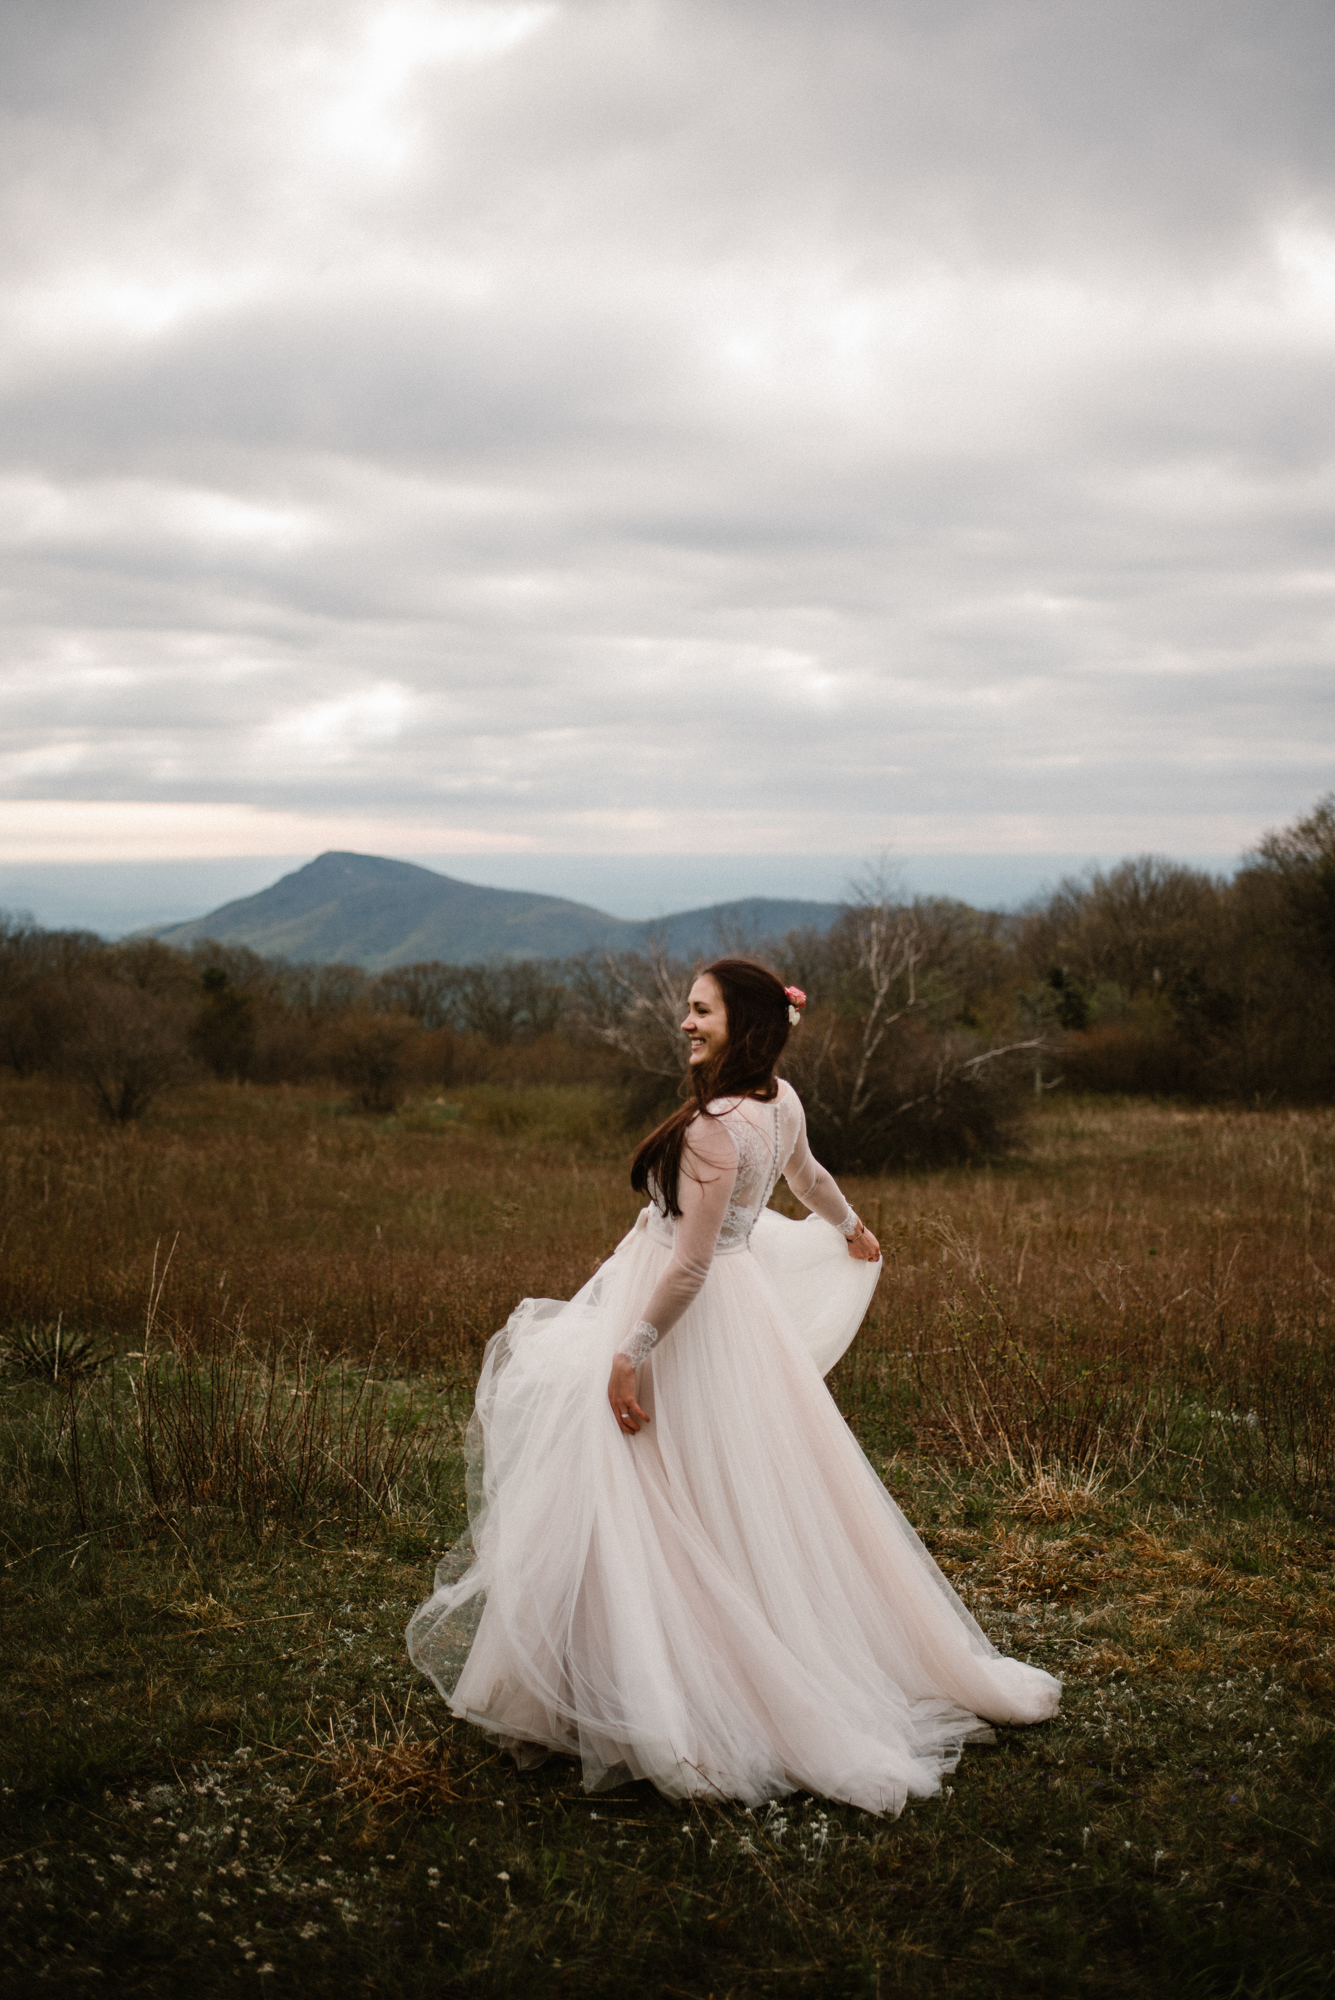 Paula and Andrew - Small Adventurous Wedding in Shenandoah National Park - Blue Ridge Mountain Wedding - White Sails Creative - Mountain Elopement_42.jpg